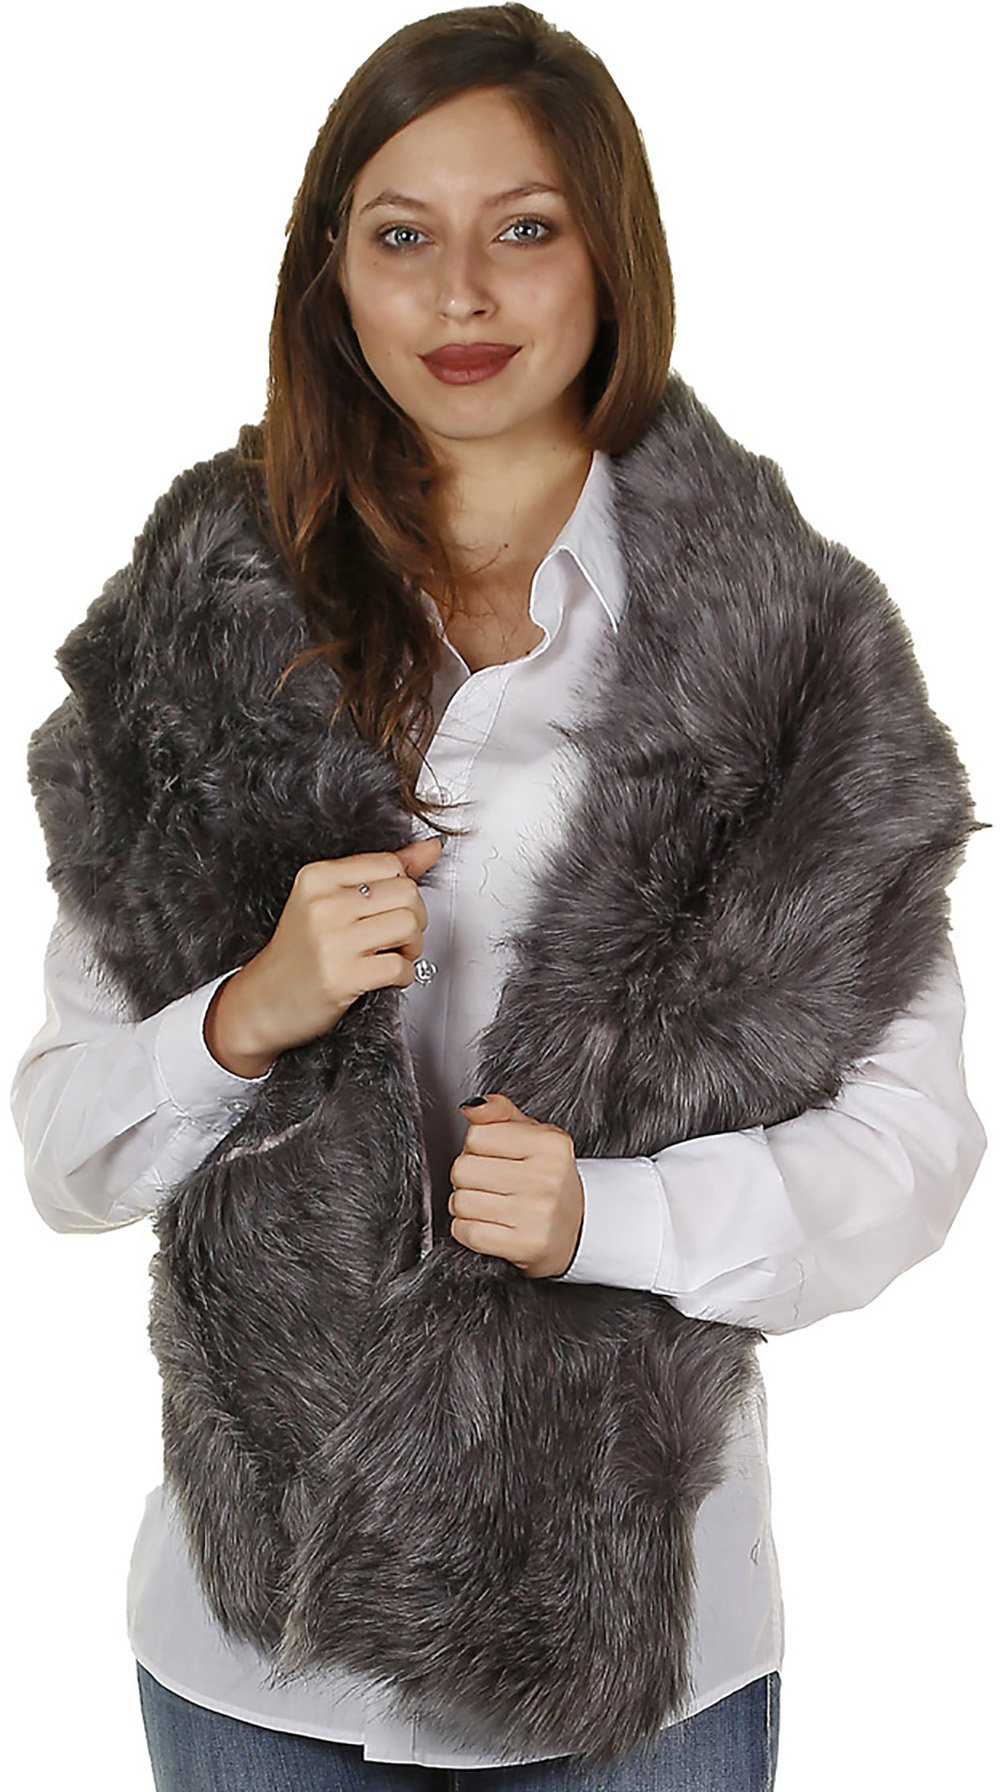 GILBIN'S Women's Stylish Warm Winter Faux Fur Scarf Neck Shawl,With Loophole Or With Two Pockets For Warming Hands(Grey)